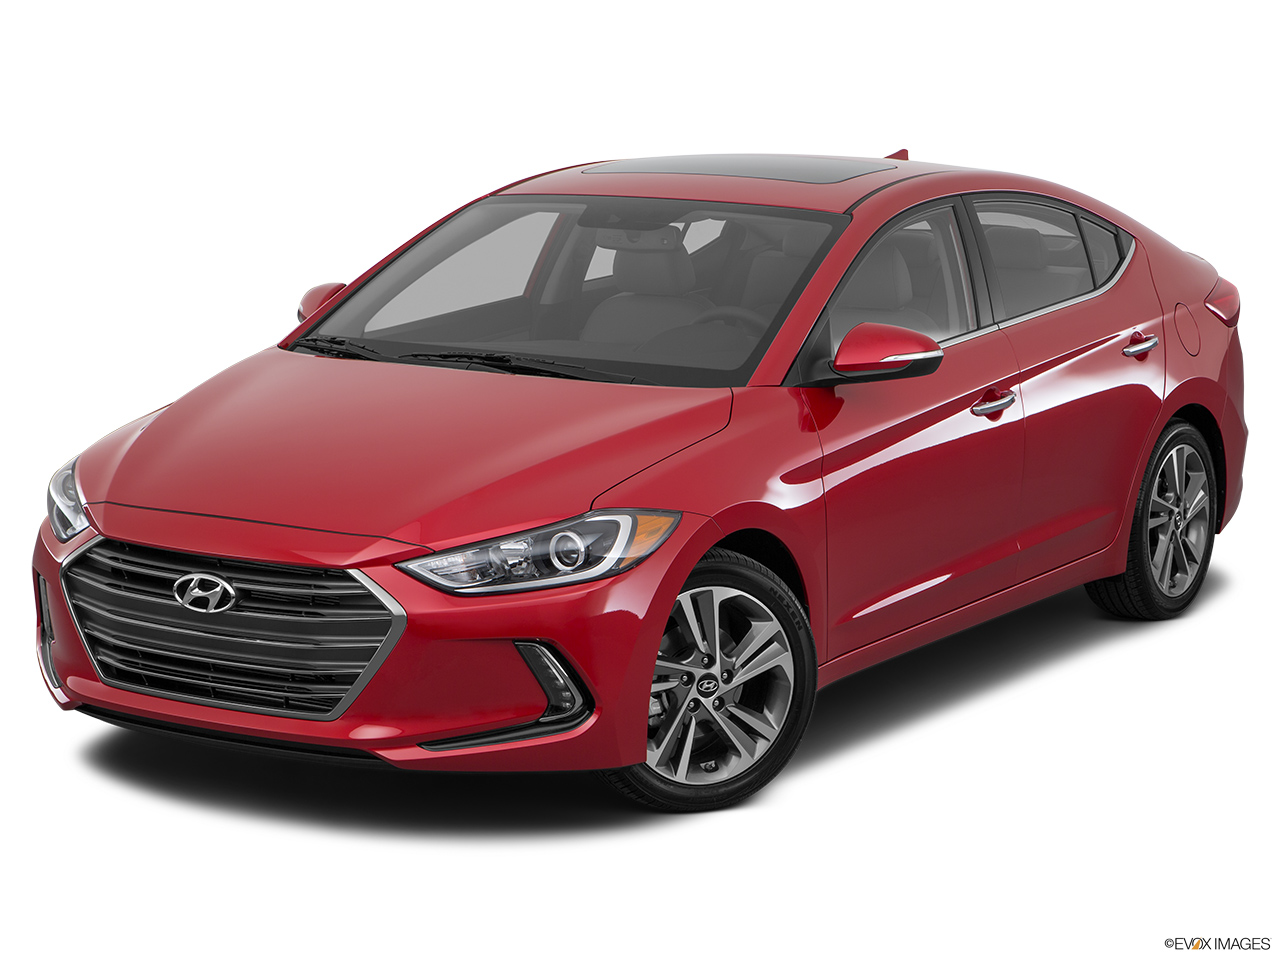 2017 Hyundai Elantra Prices in UAE, Gulf Specs & Reviews ...